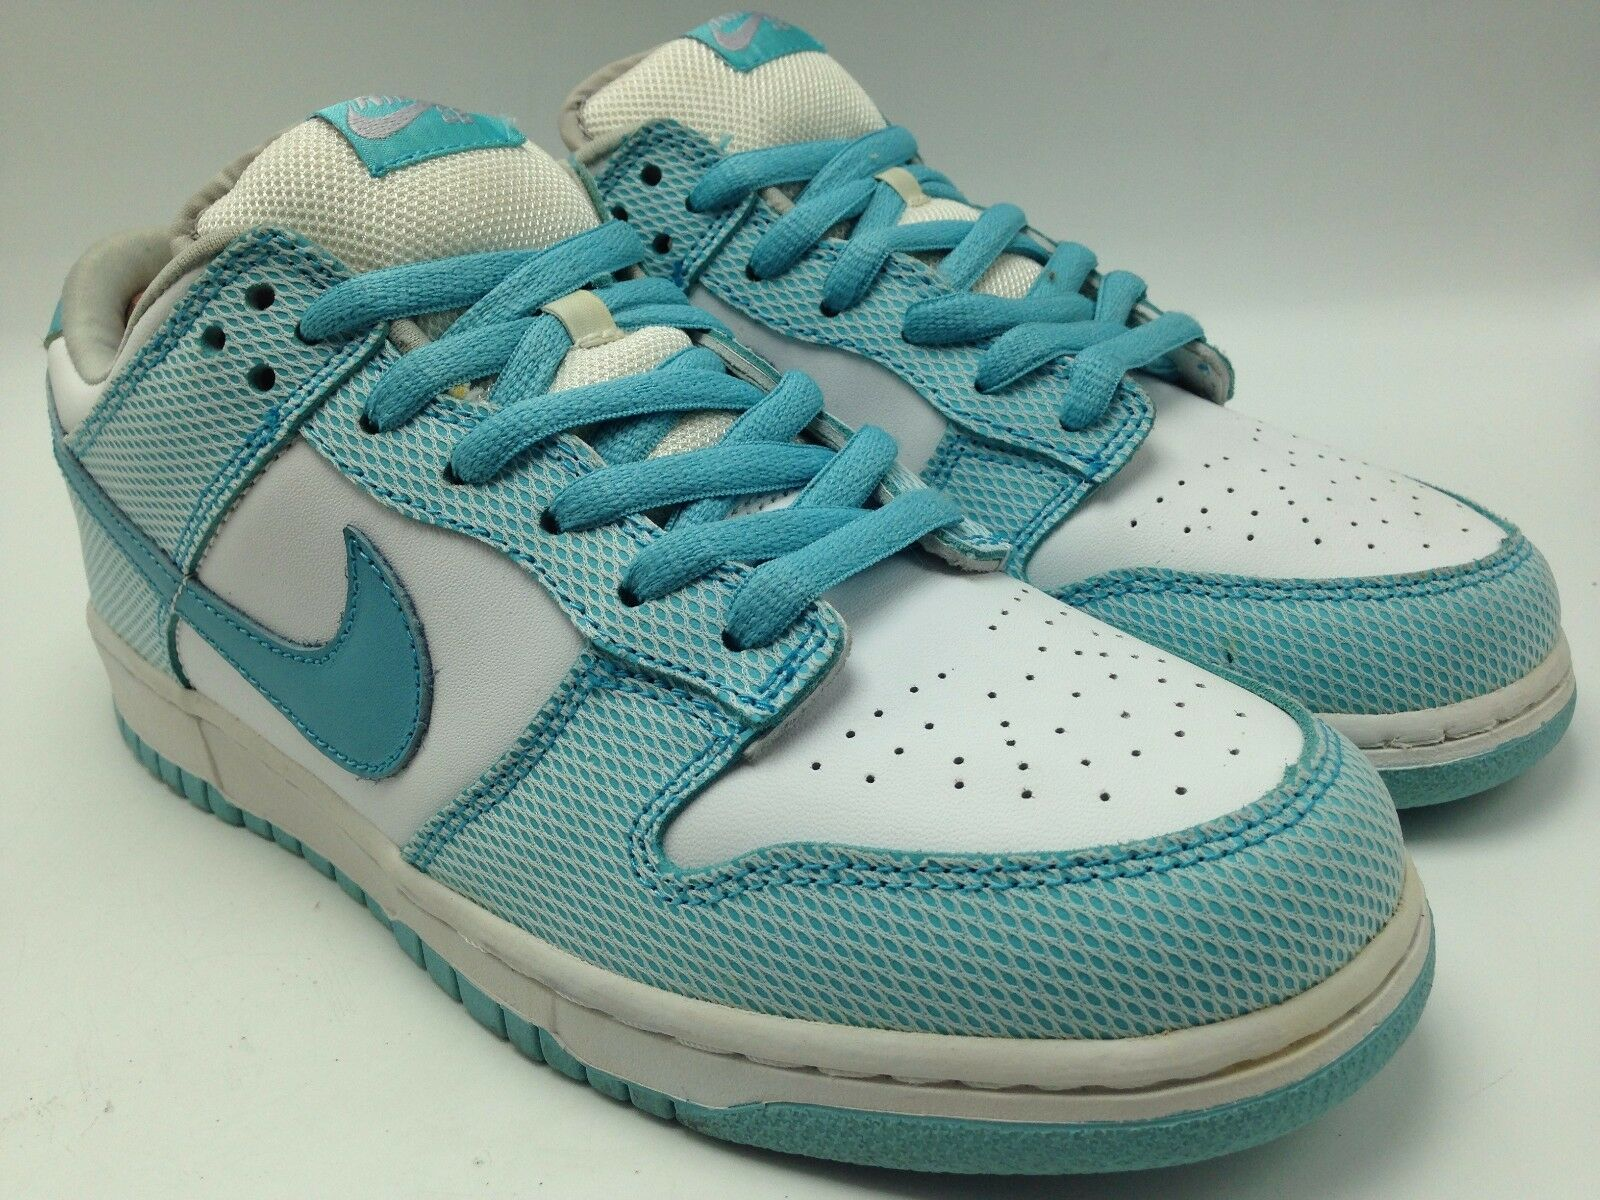 Nike Dunk Low Pro Casual Sneakers Aqua White Men Collector Bon Jovi shoes Sz 9